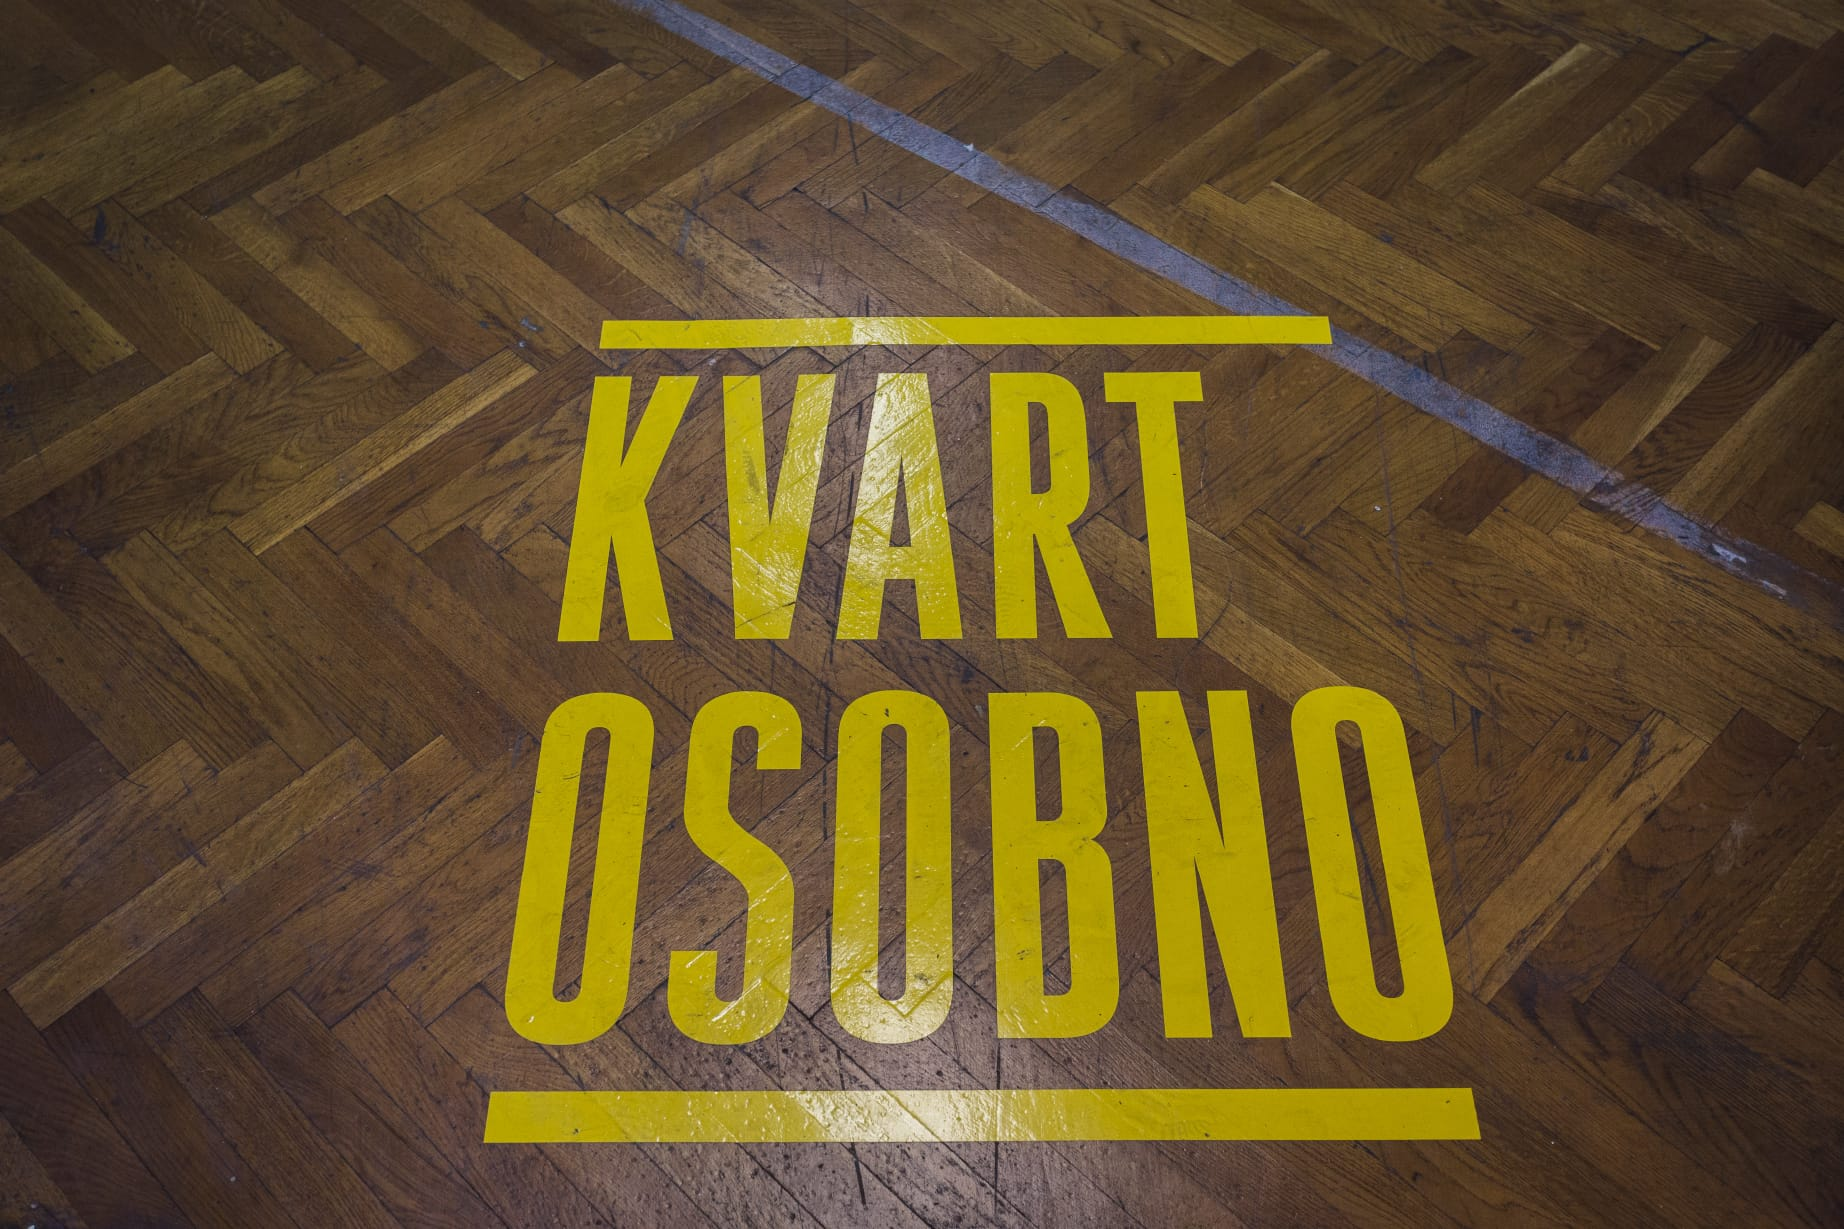 Kvart osobno - Neighborhood in-person 01